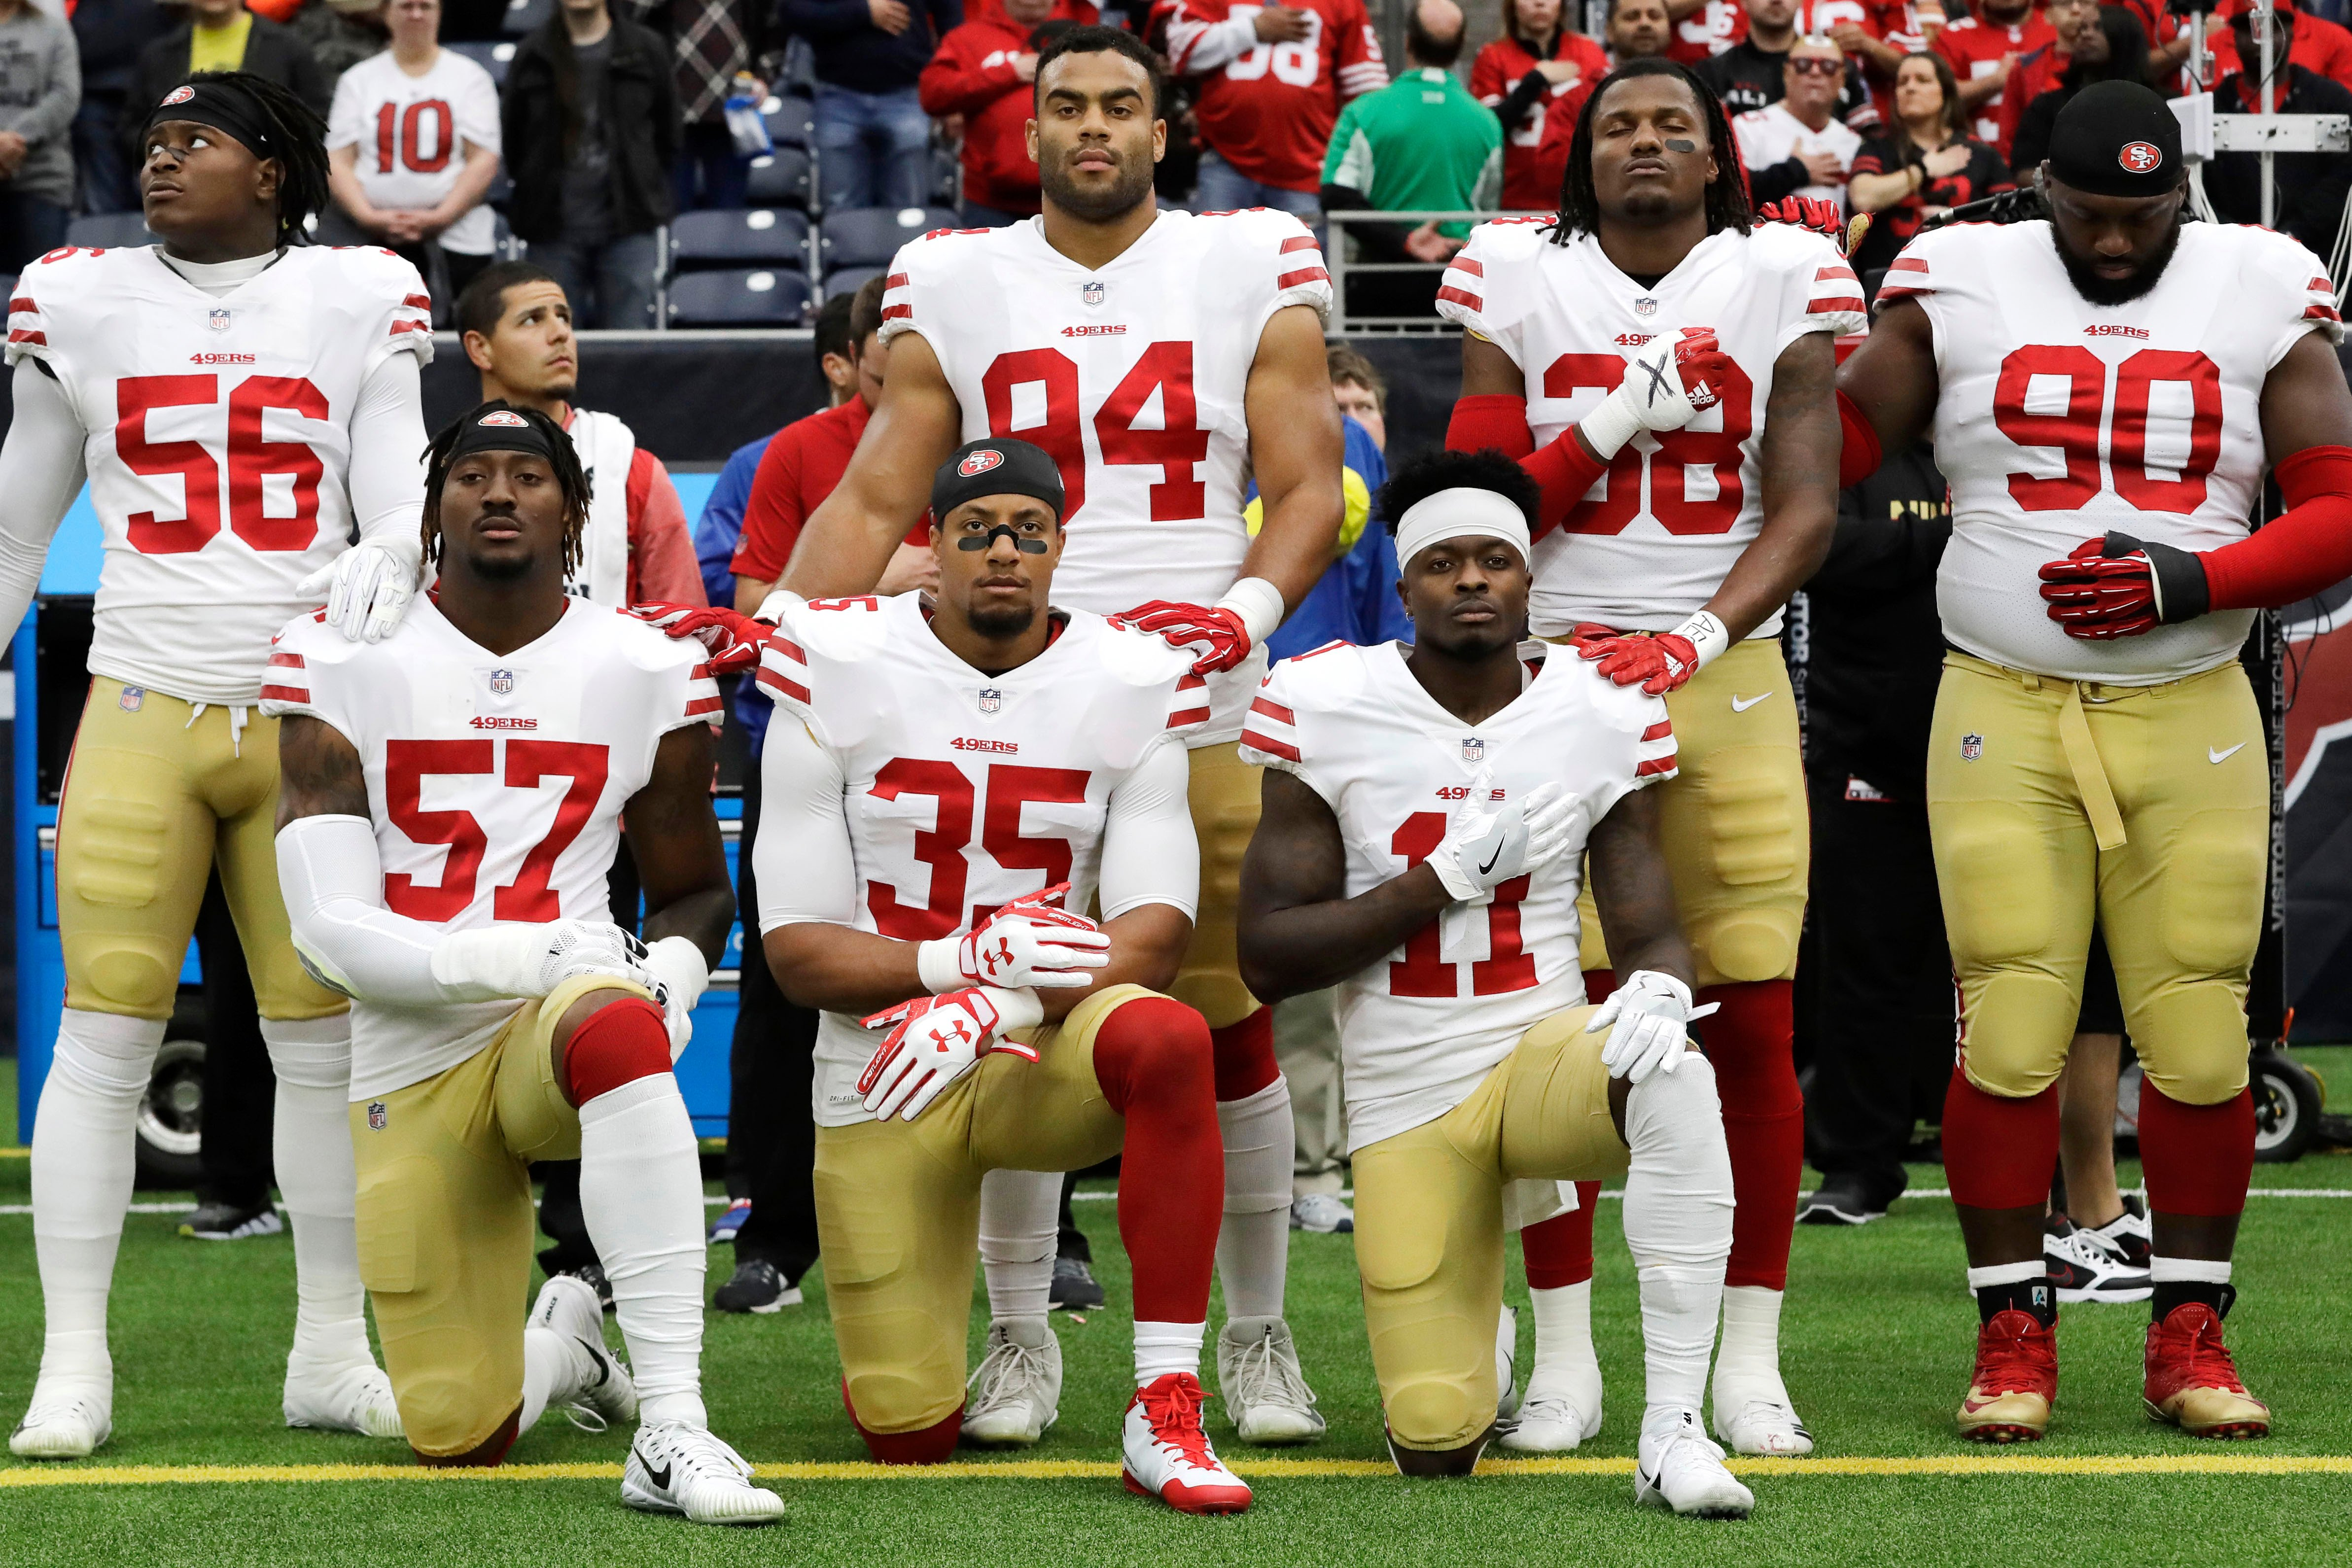 NFL playing more politics with the national anthem issue